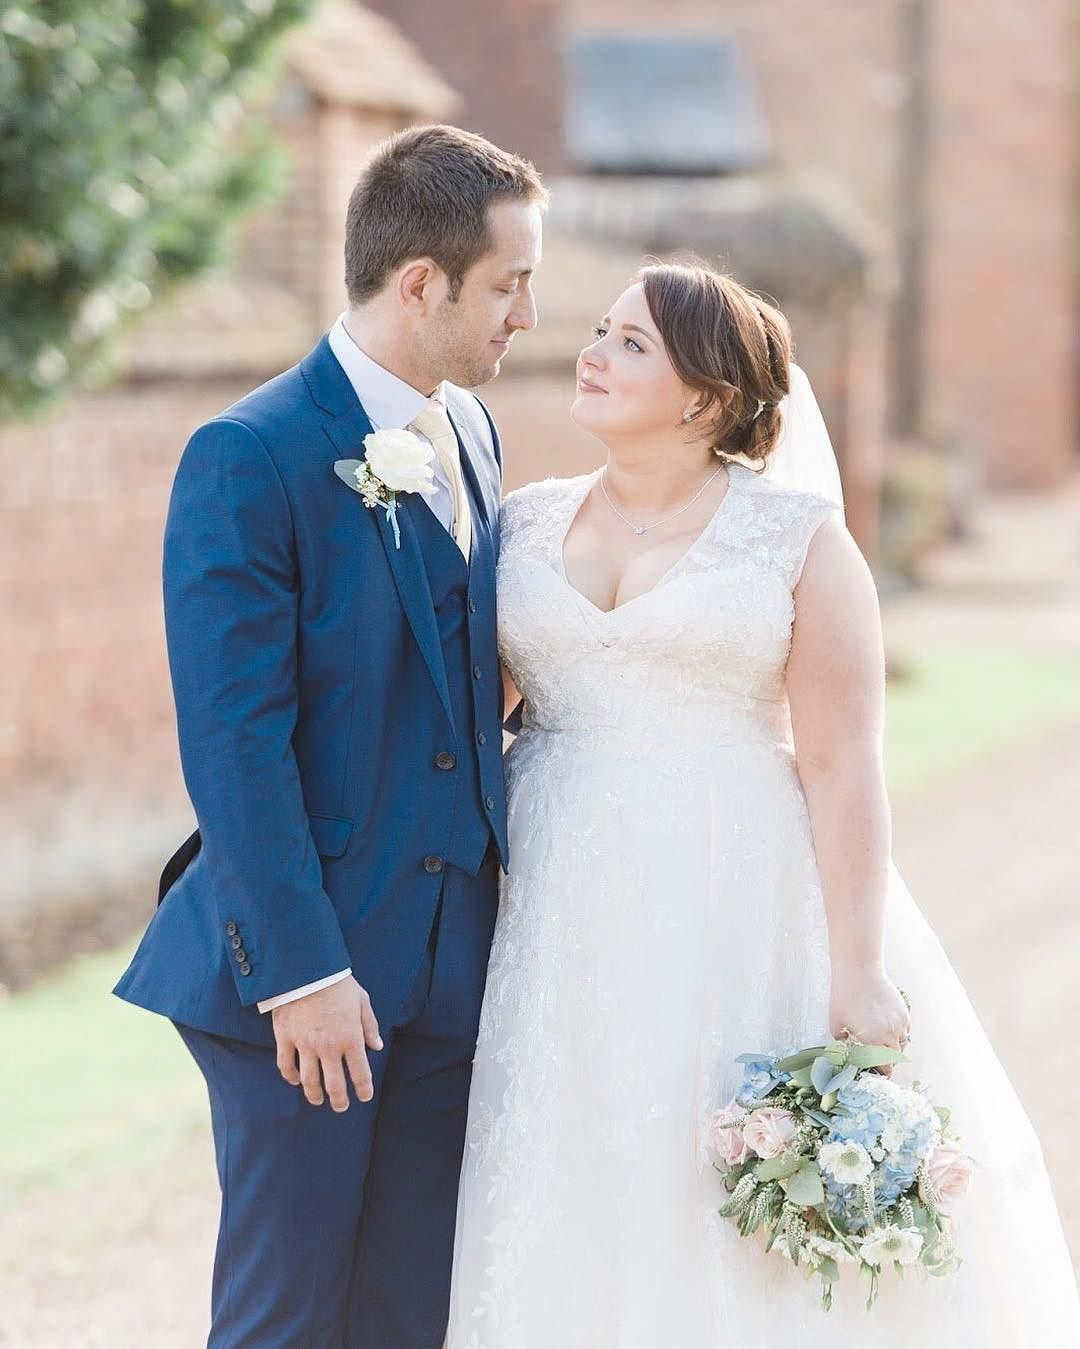 Swooning over lbqblog's exquisite and timeless wedding